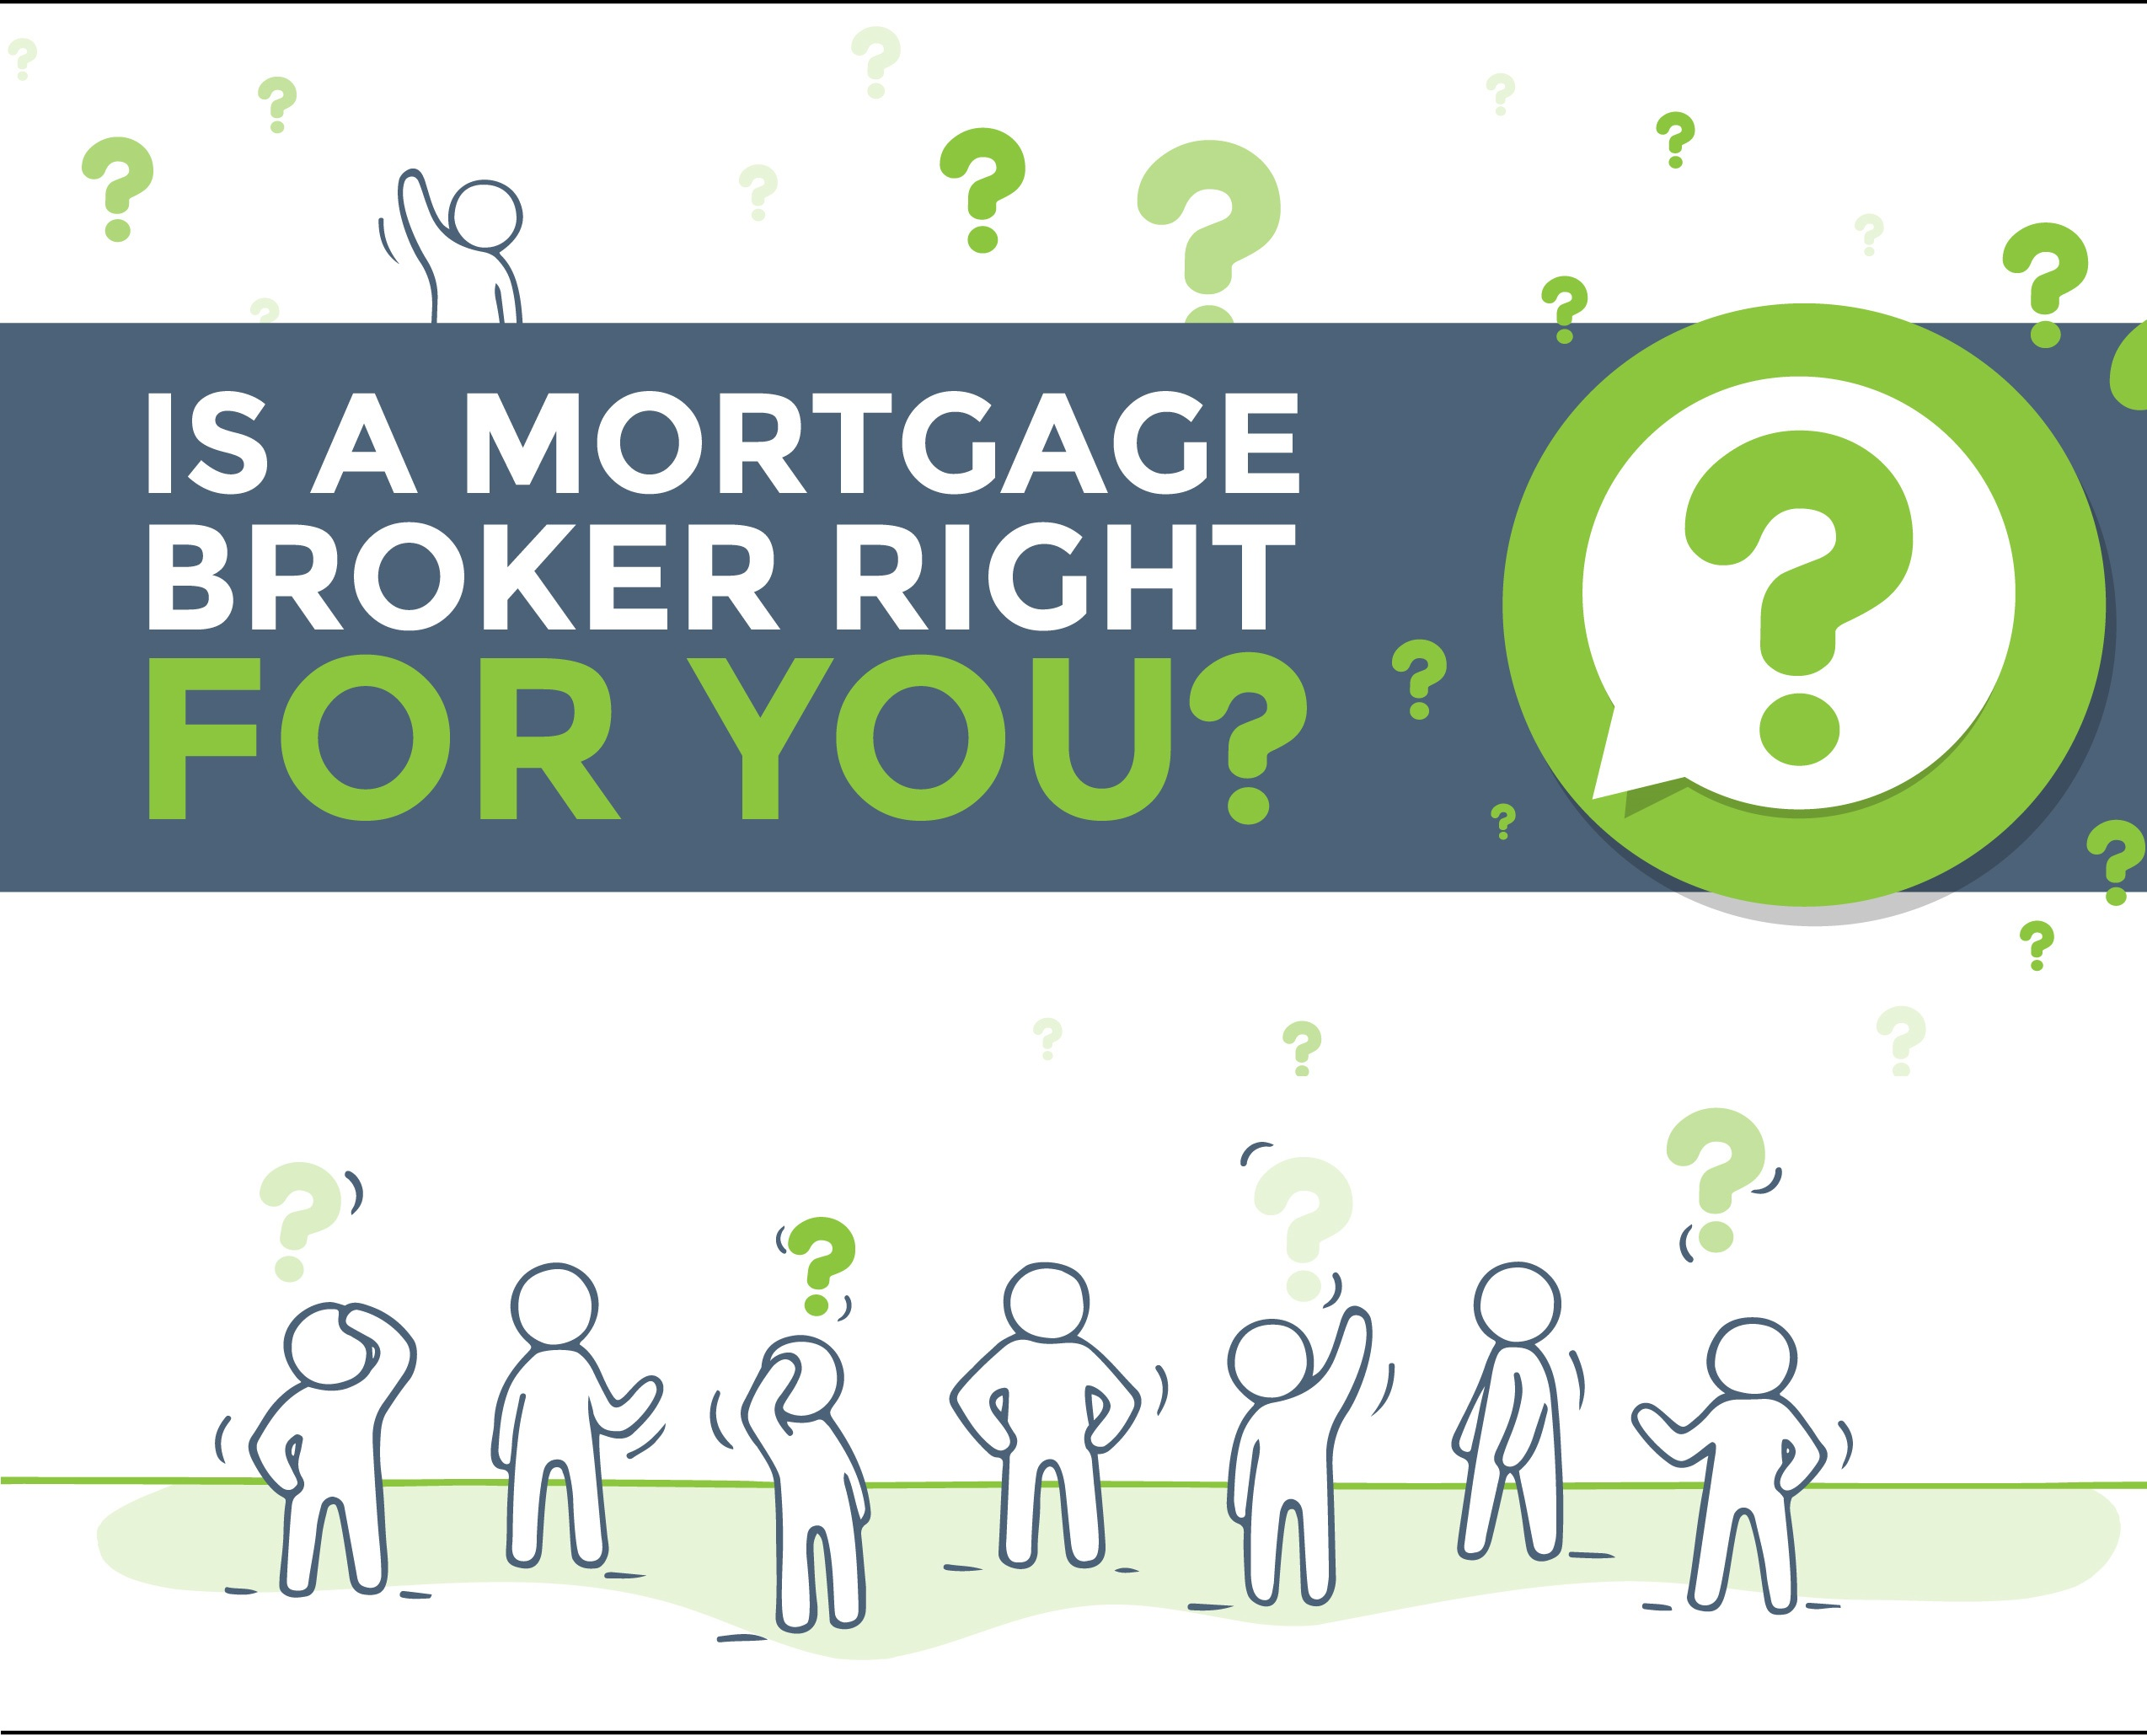 Is A Mortgage Broker Right For You?